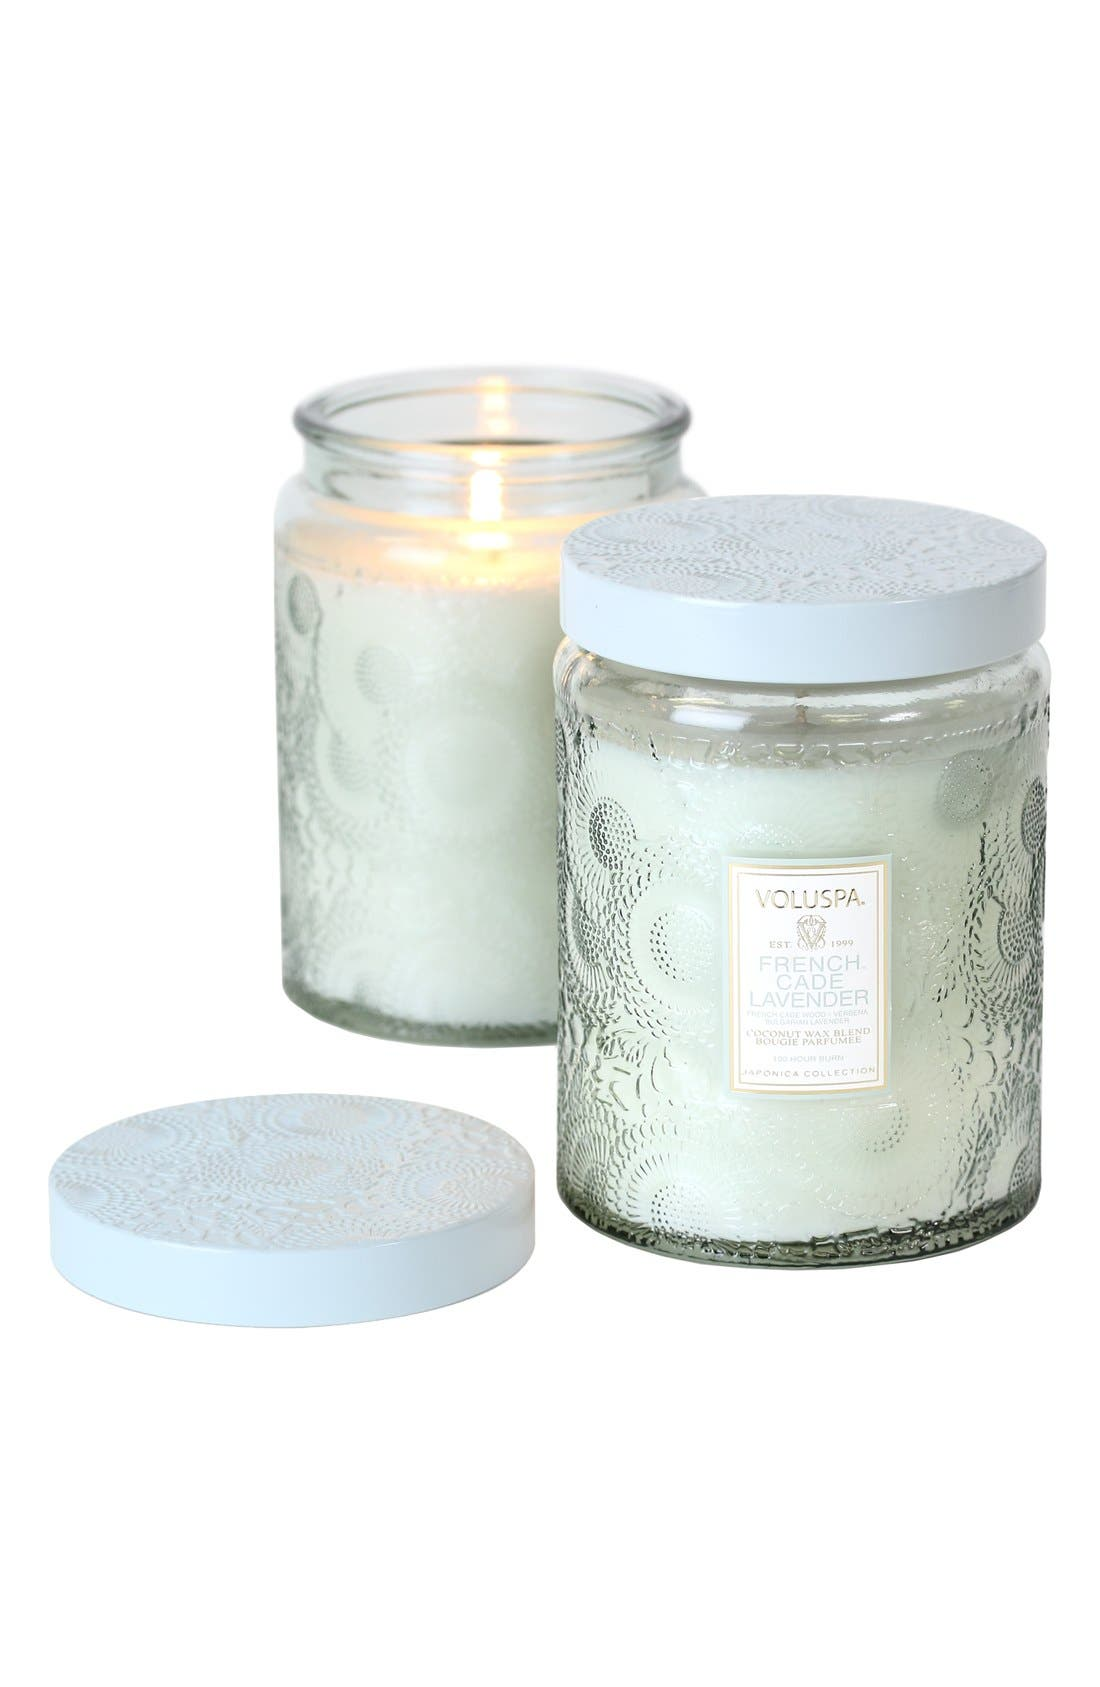 Japonica French Cade Lavender Large Embossed Jar Candle,                         Main,                         color, 000